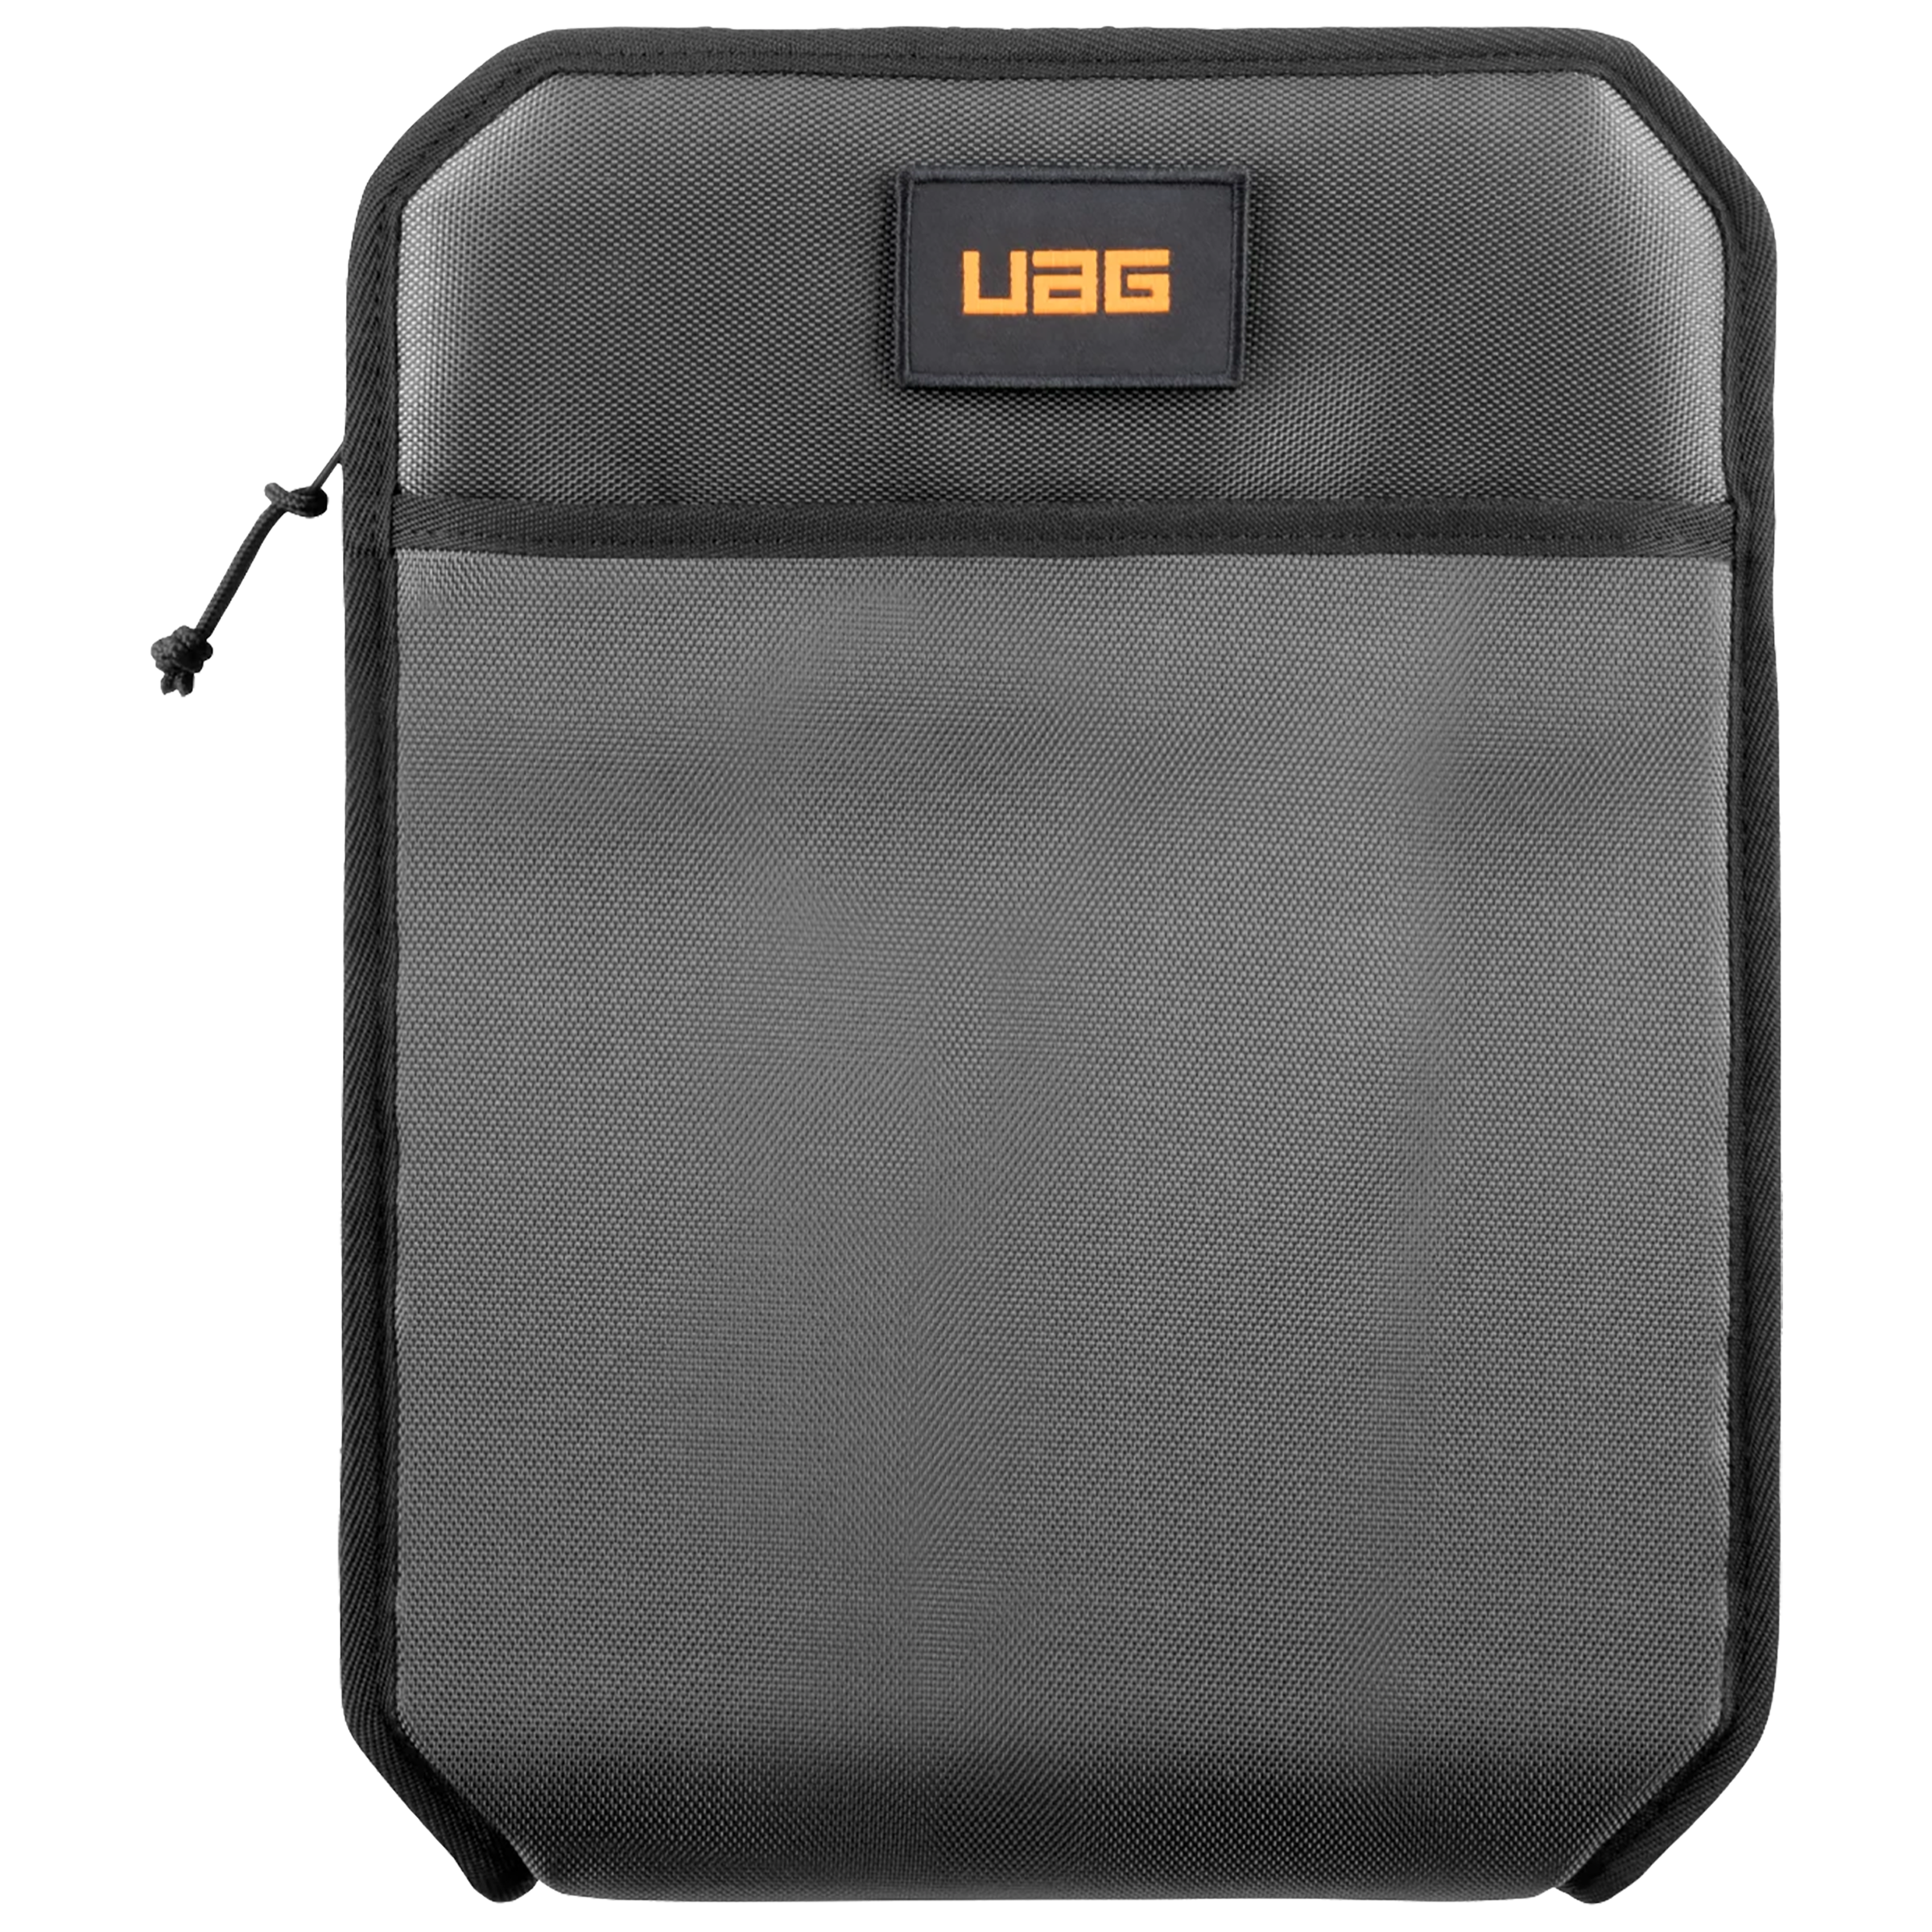 UAG Shock Sleeve Lite Polycarbonate Sleeve For iPad Pro 11 Inch / iPad Air 4 (MIL STD Drop-Tested Protection, UGSHOCK_IPD11P_BK, Black)_1